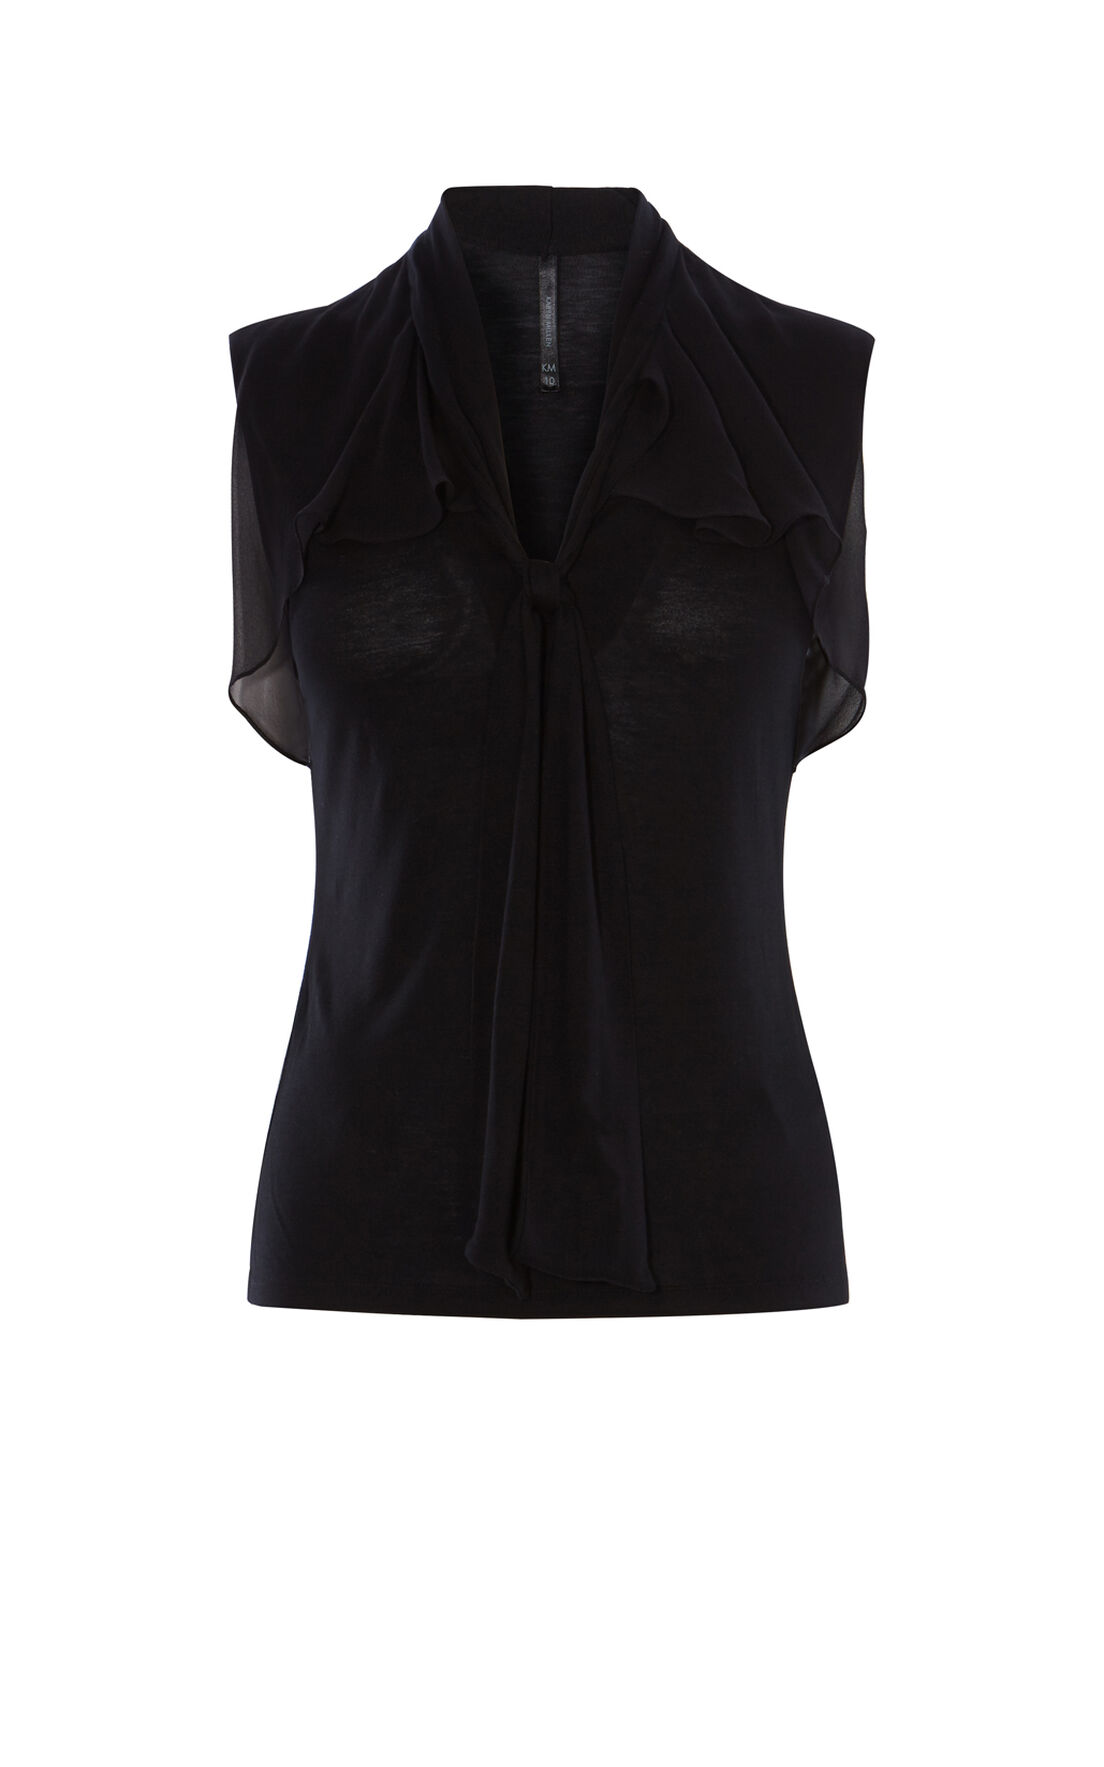 Karen Millen, DRAPED TOP Black 0